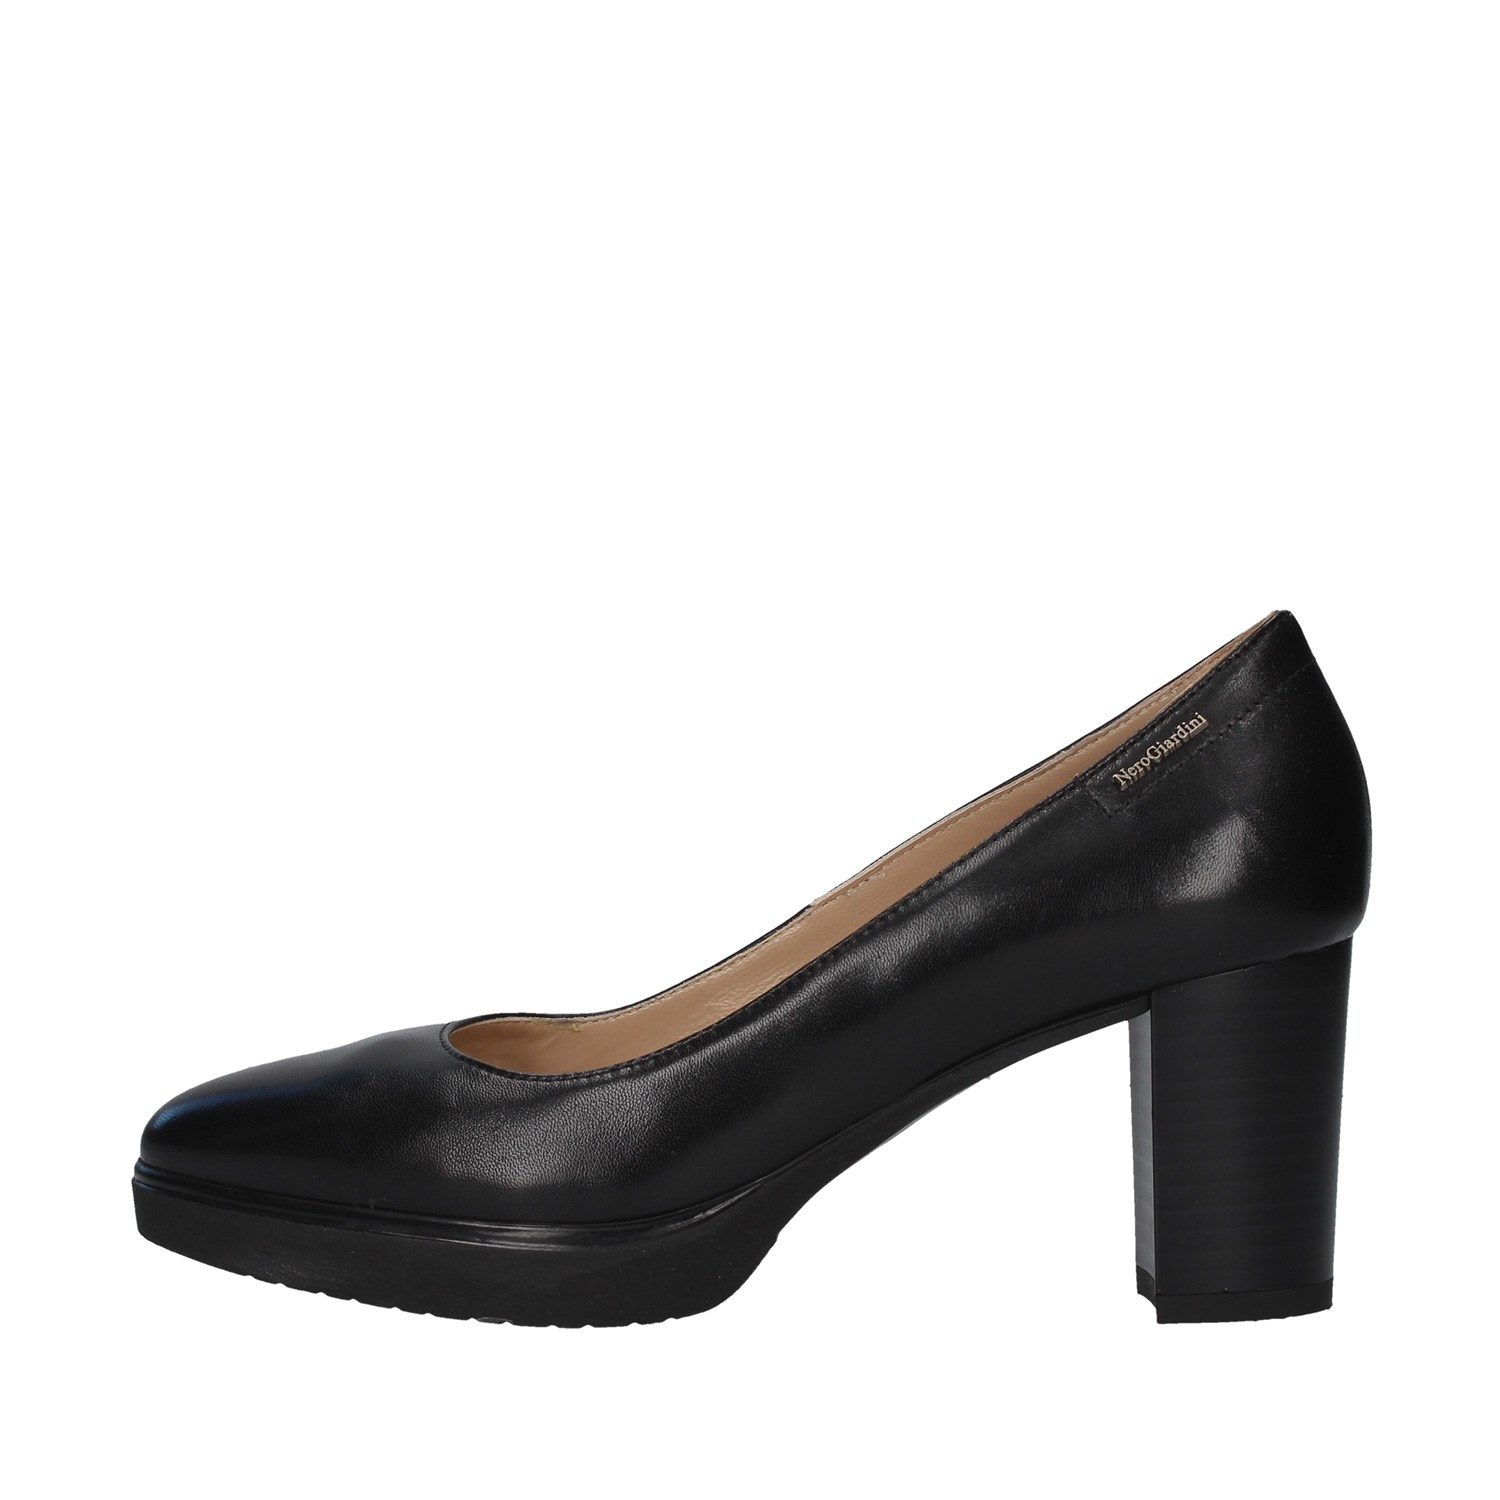 Nero Giardini Shoes Woman Decolletè BLACK I013000D